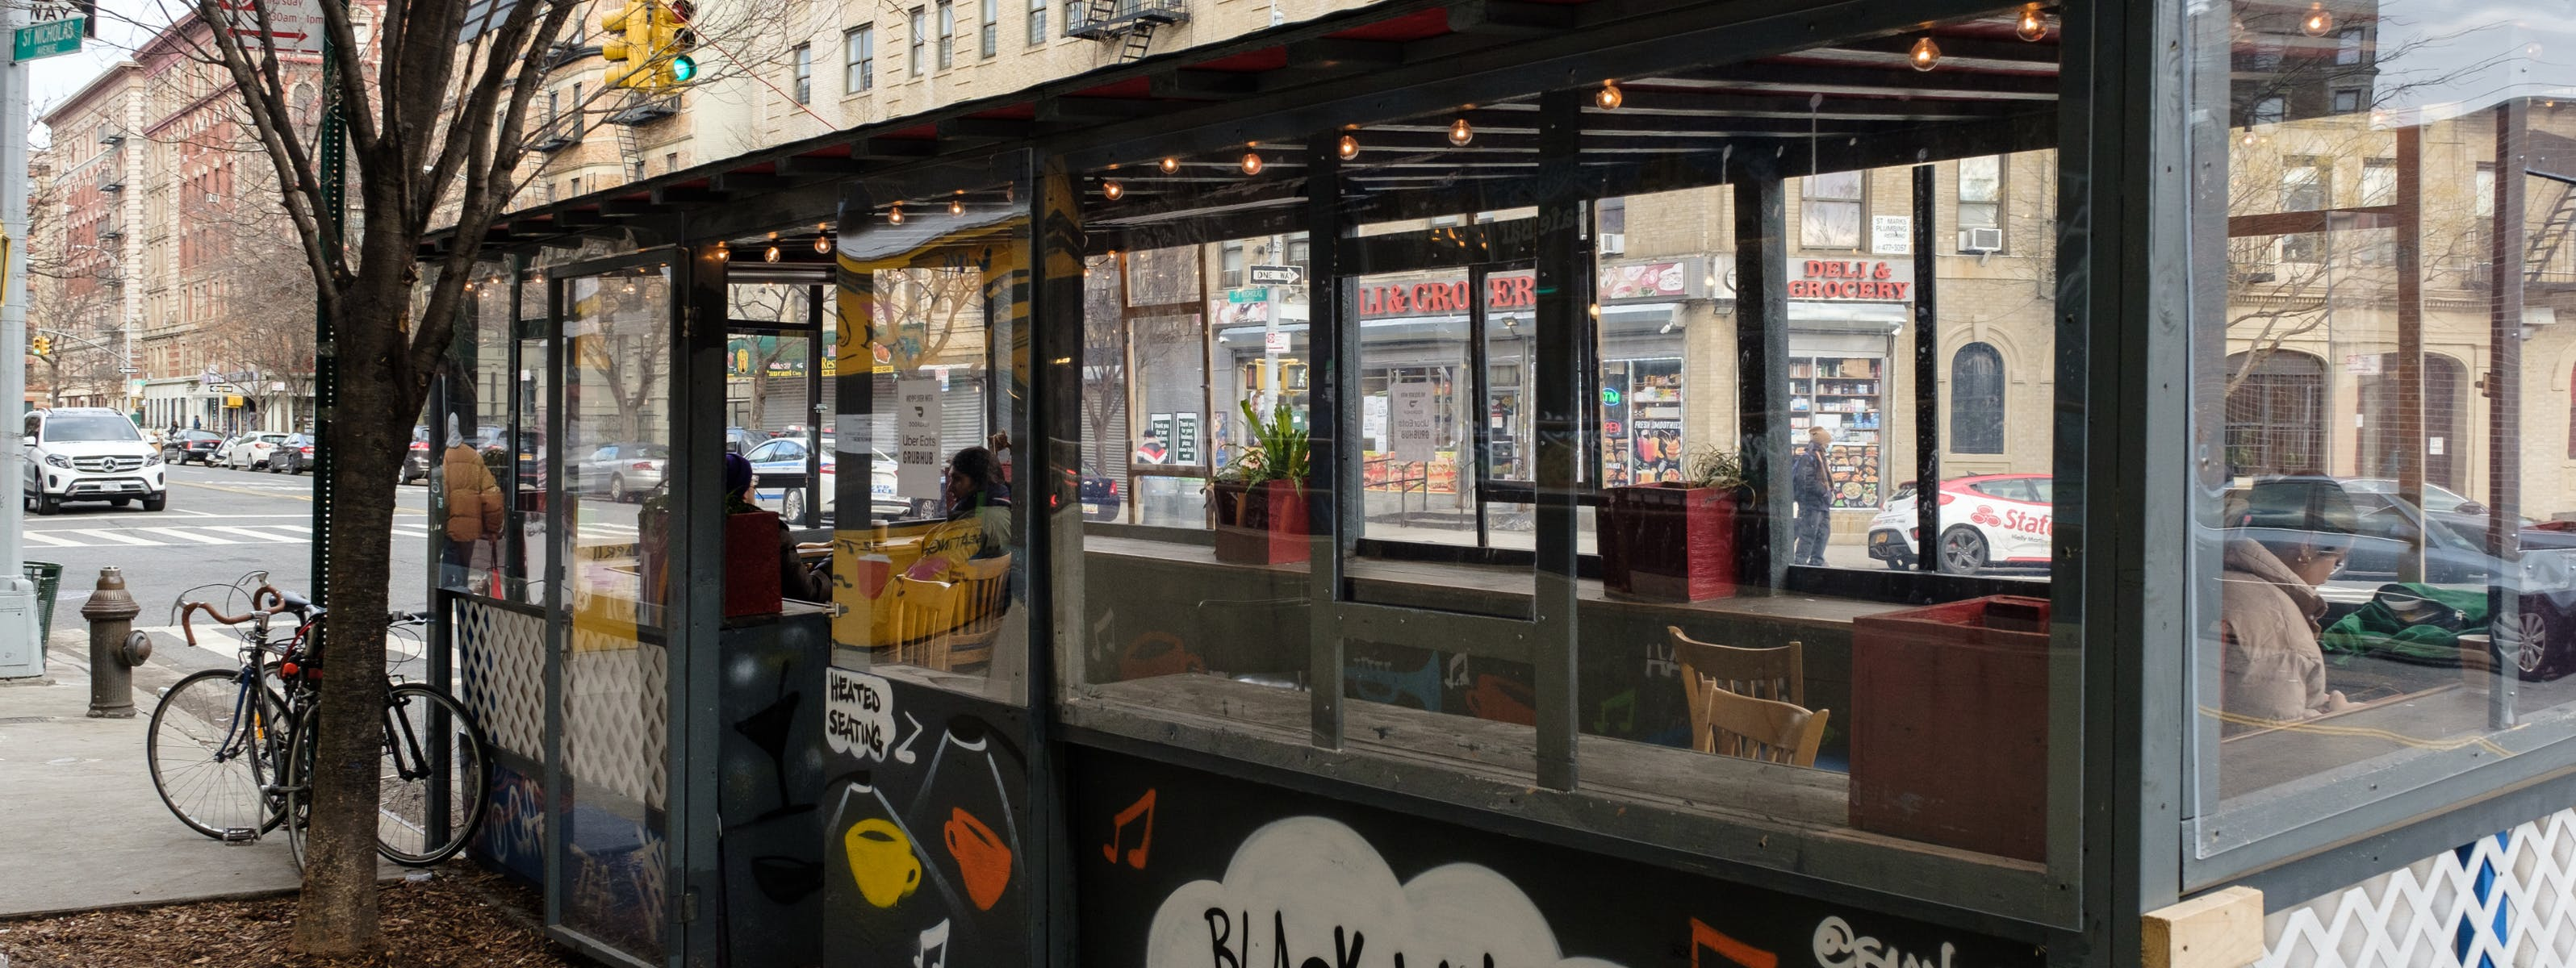 NYC Coffee Shops With Outdoor Heat Lamps - New York - The Infatuation